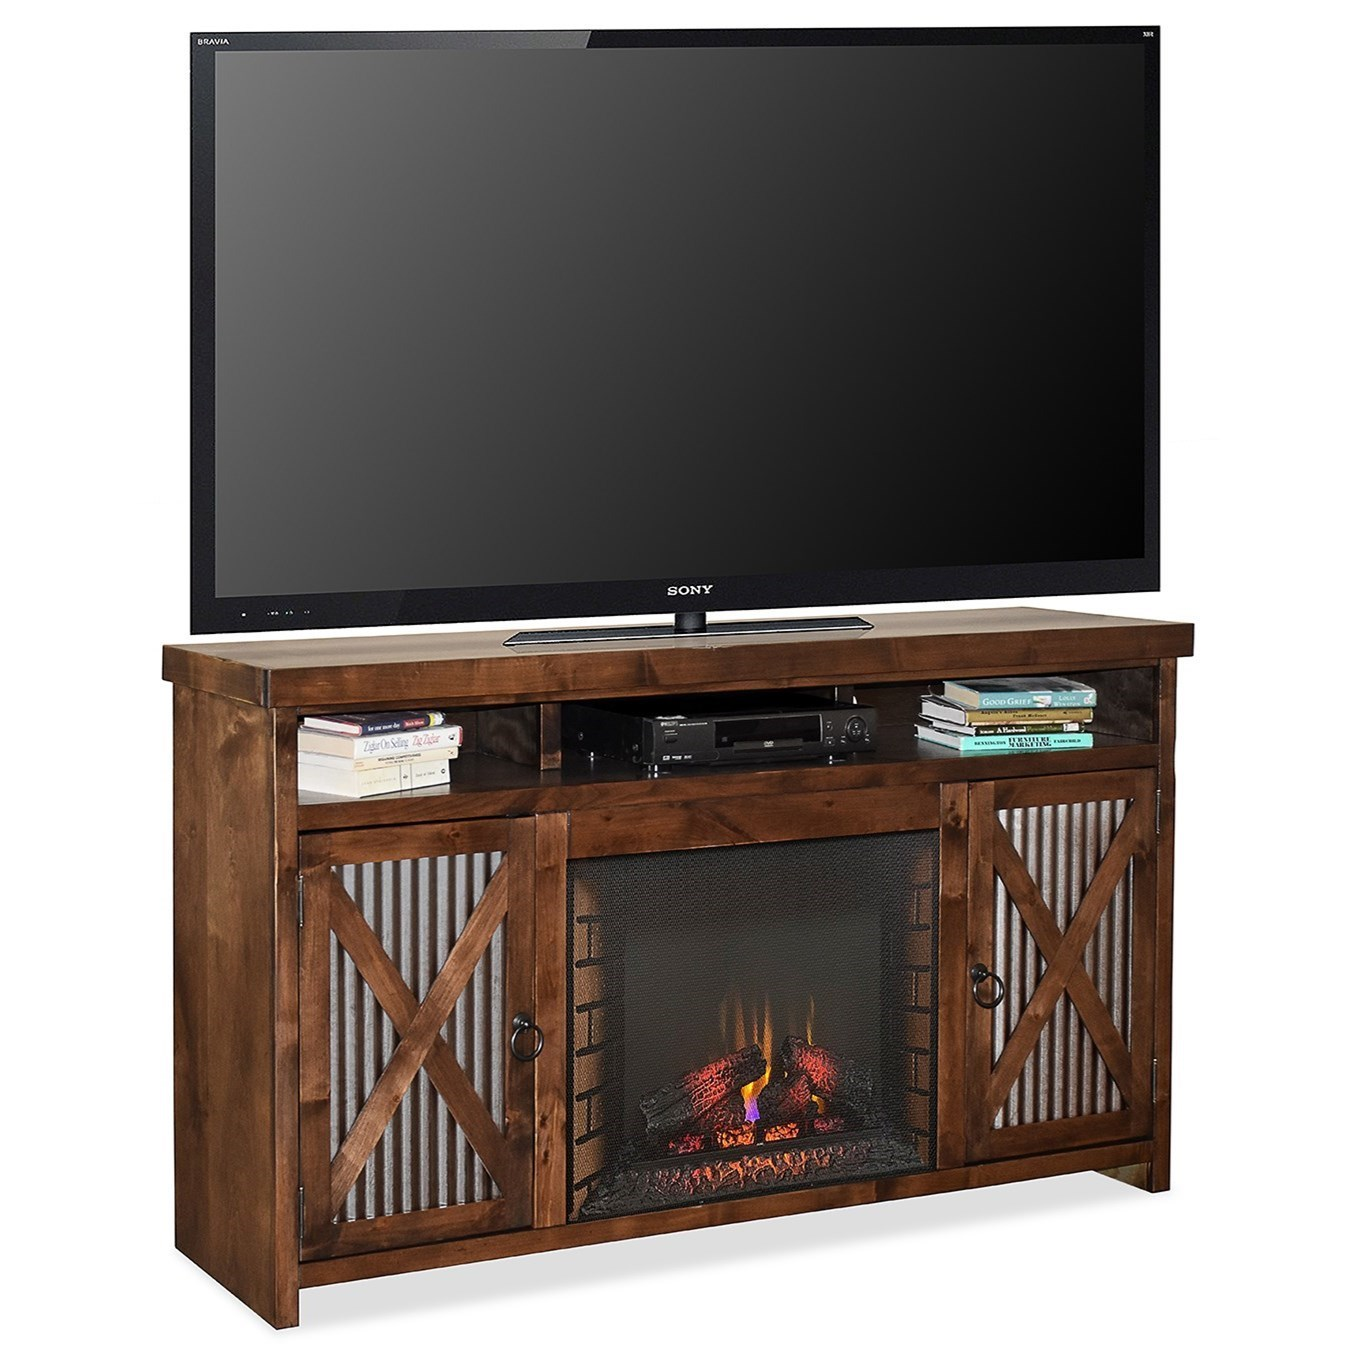 Rustic Fireplace Console